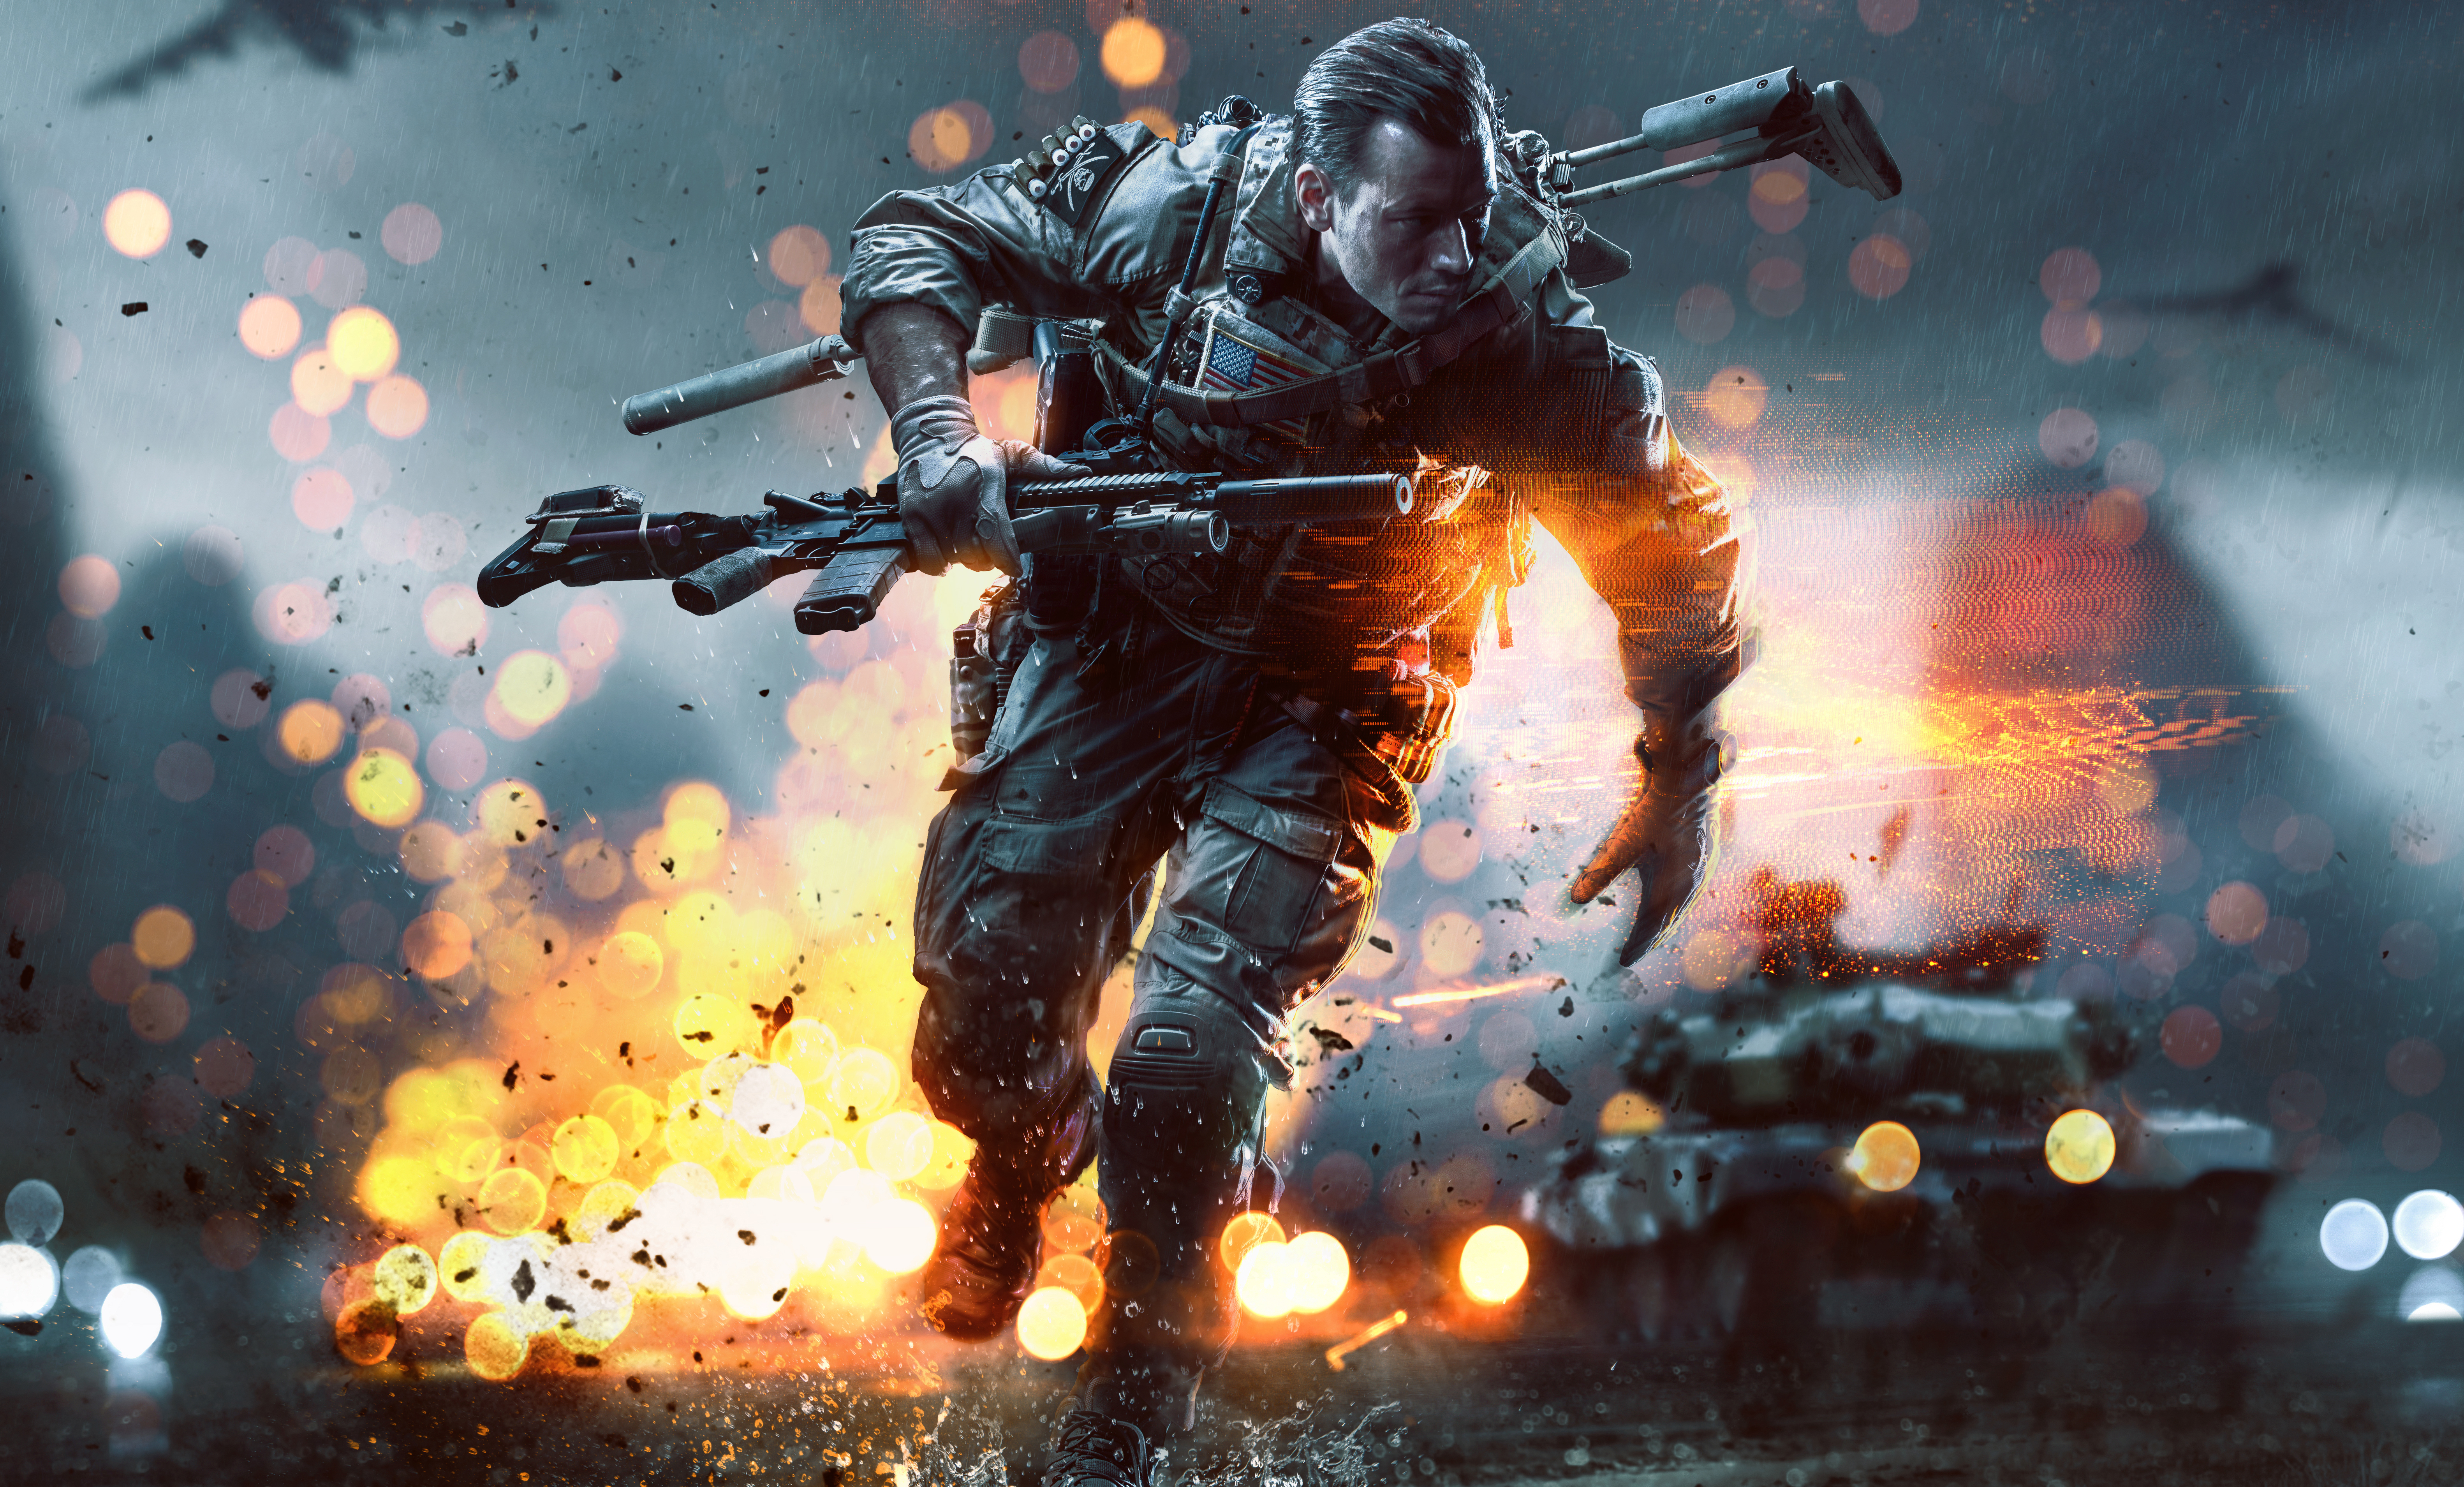 184 battlefield 4 hd wallpapers | background images - wallpaper abyss